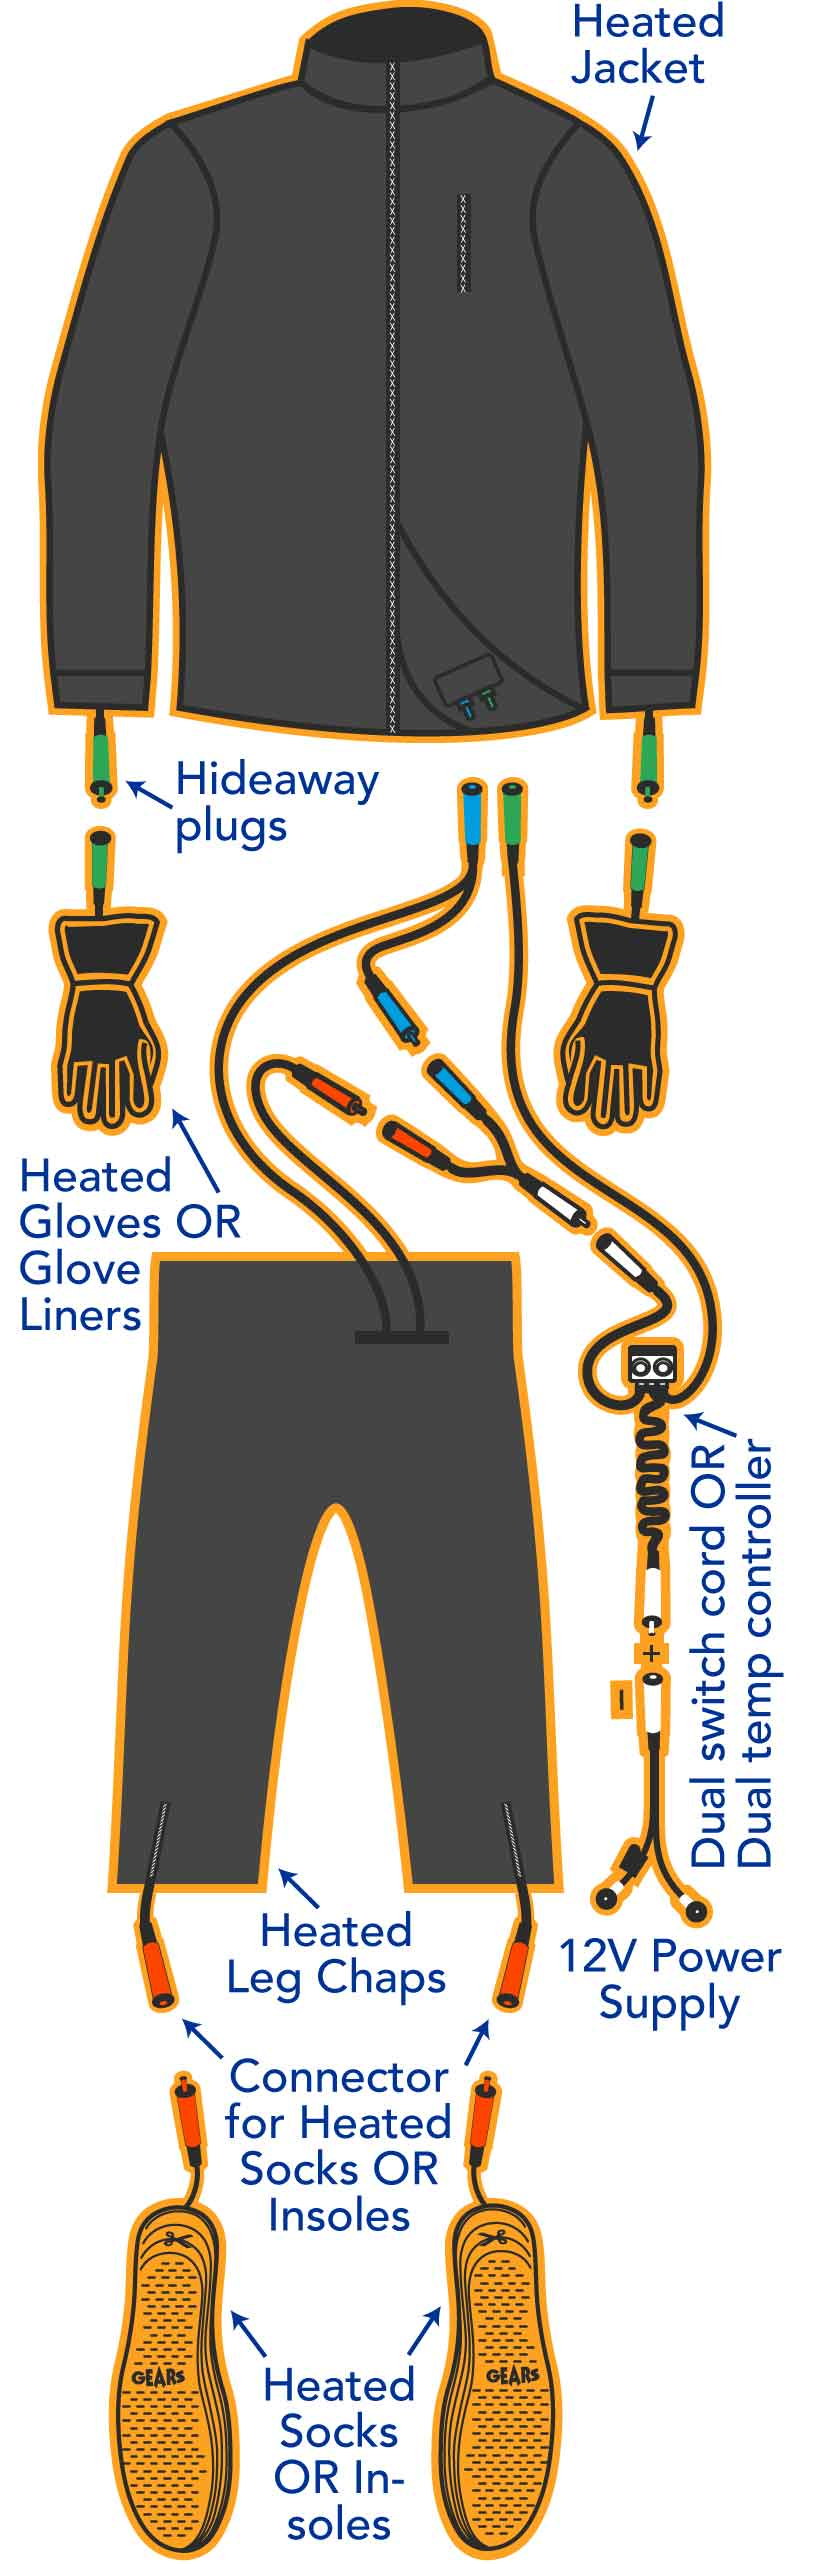 Seamless Connectivity for Heated Clothing